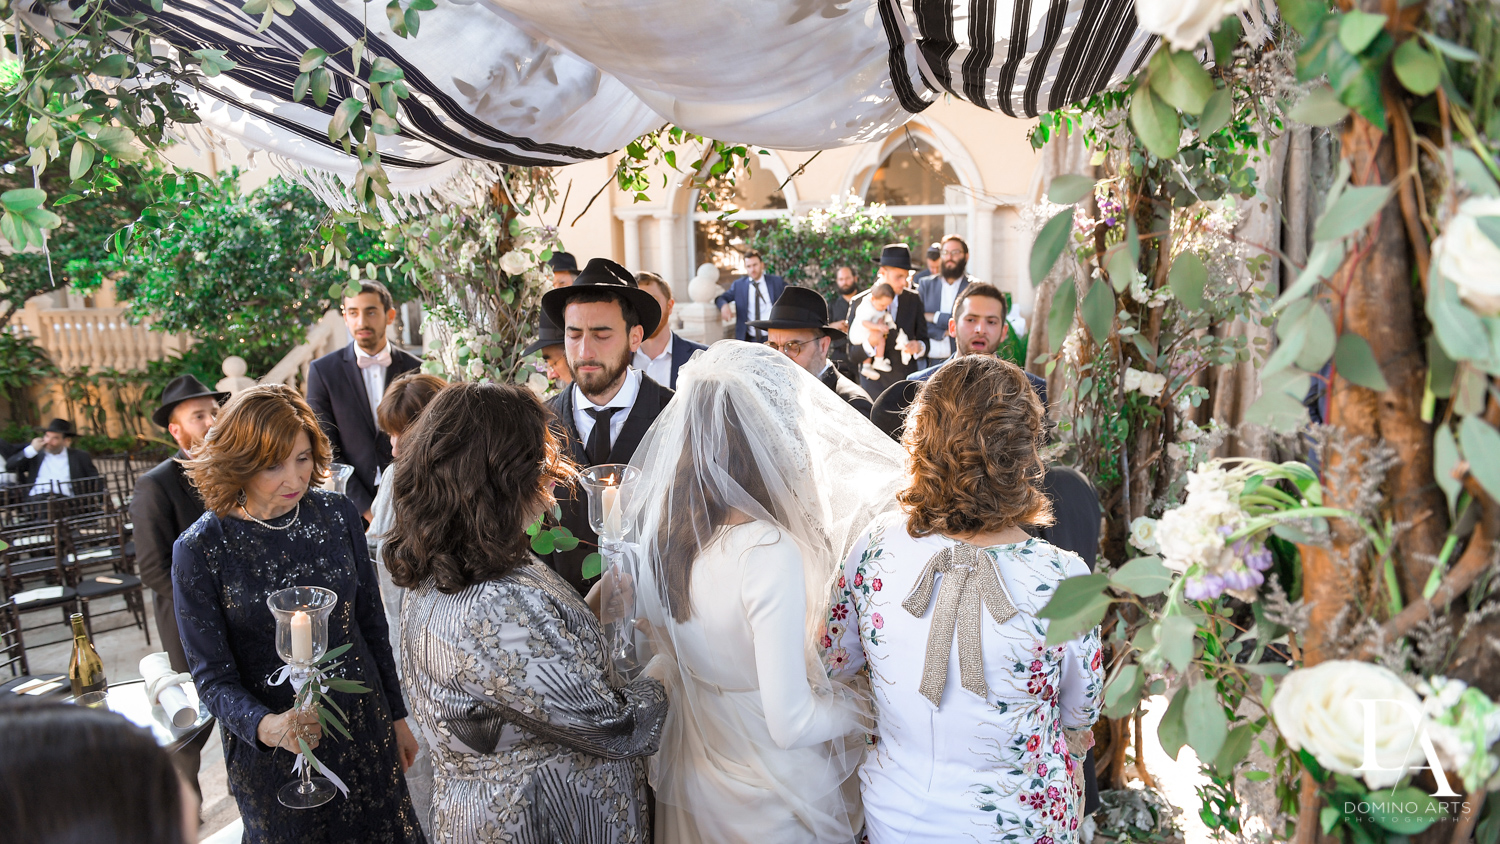 traditions at Hasidic Jewish Wedding at The Addison in Boca Raton by Domino Arts Photography